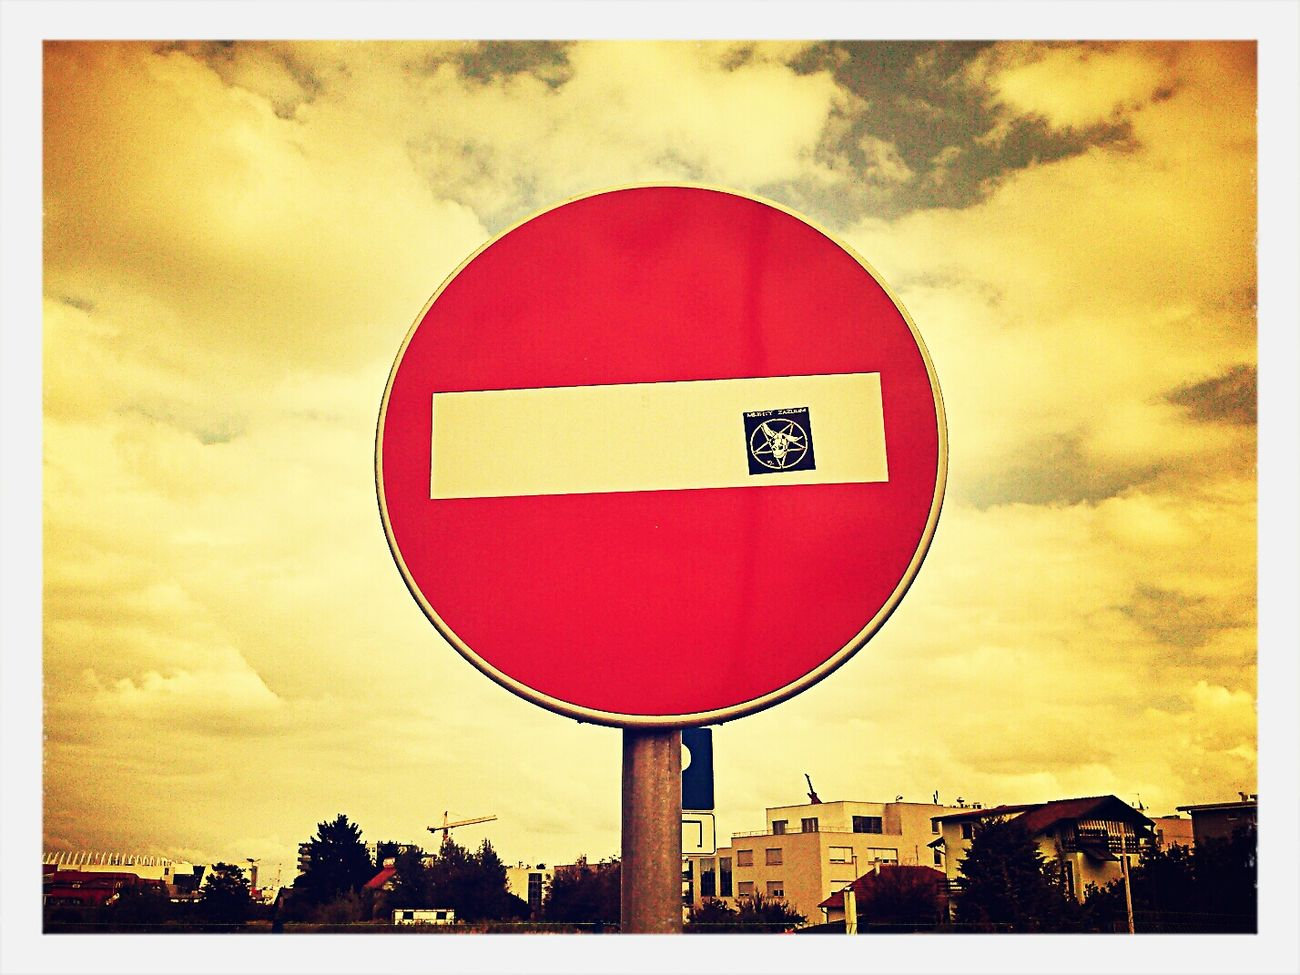 life is a journey Life *-* City Signs Clouds